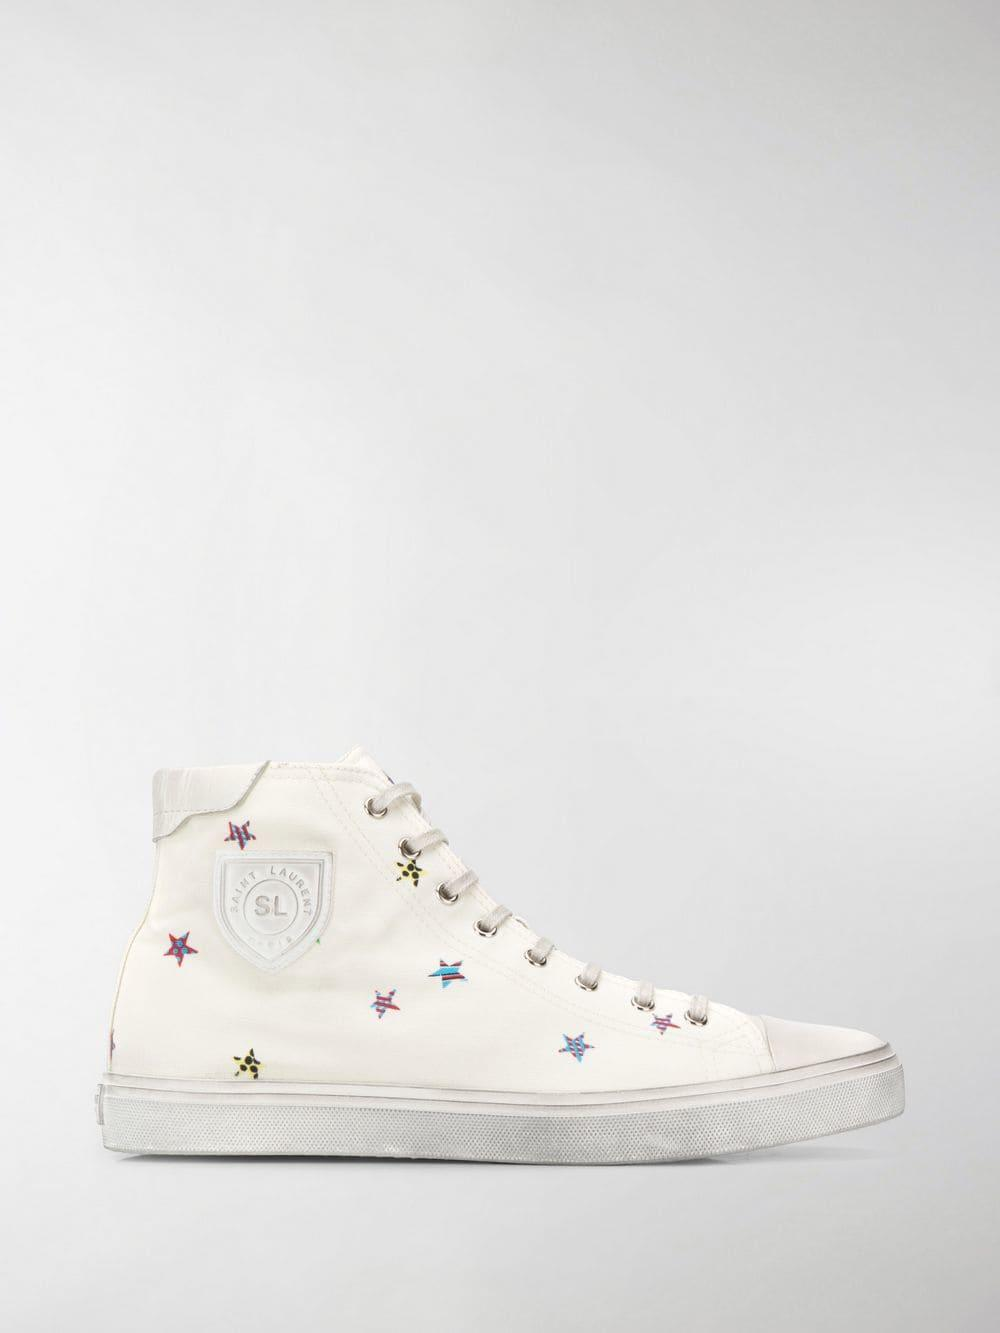 b7785750429a Lyst - Saint Laurent Bedford Star-print Sneakers in White for Men